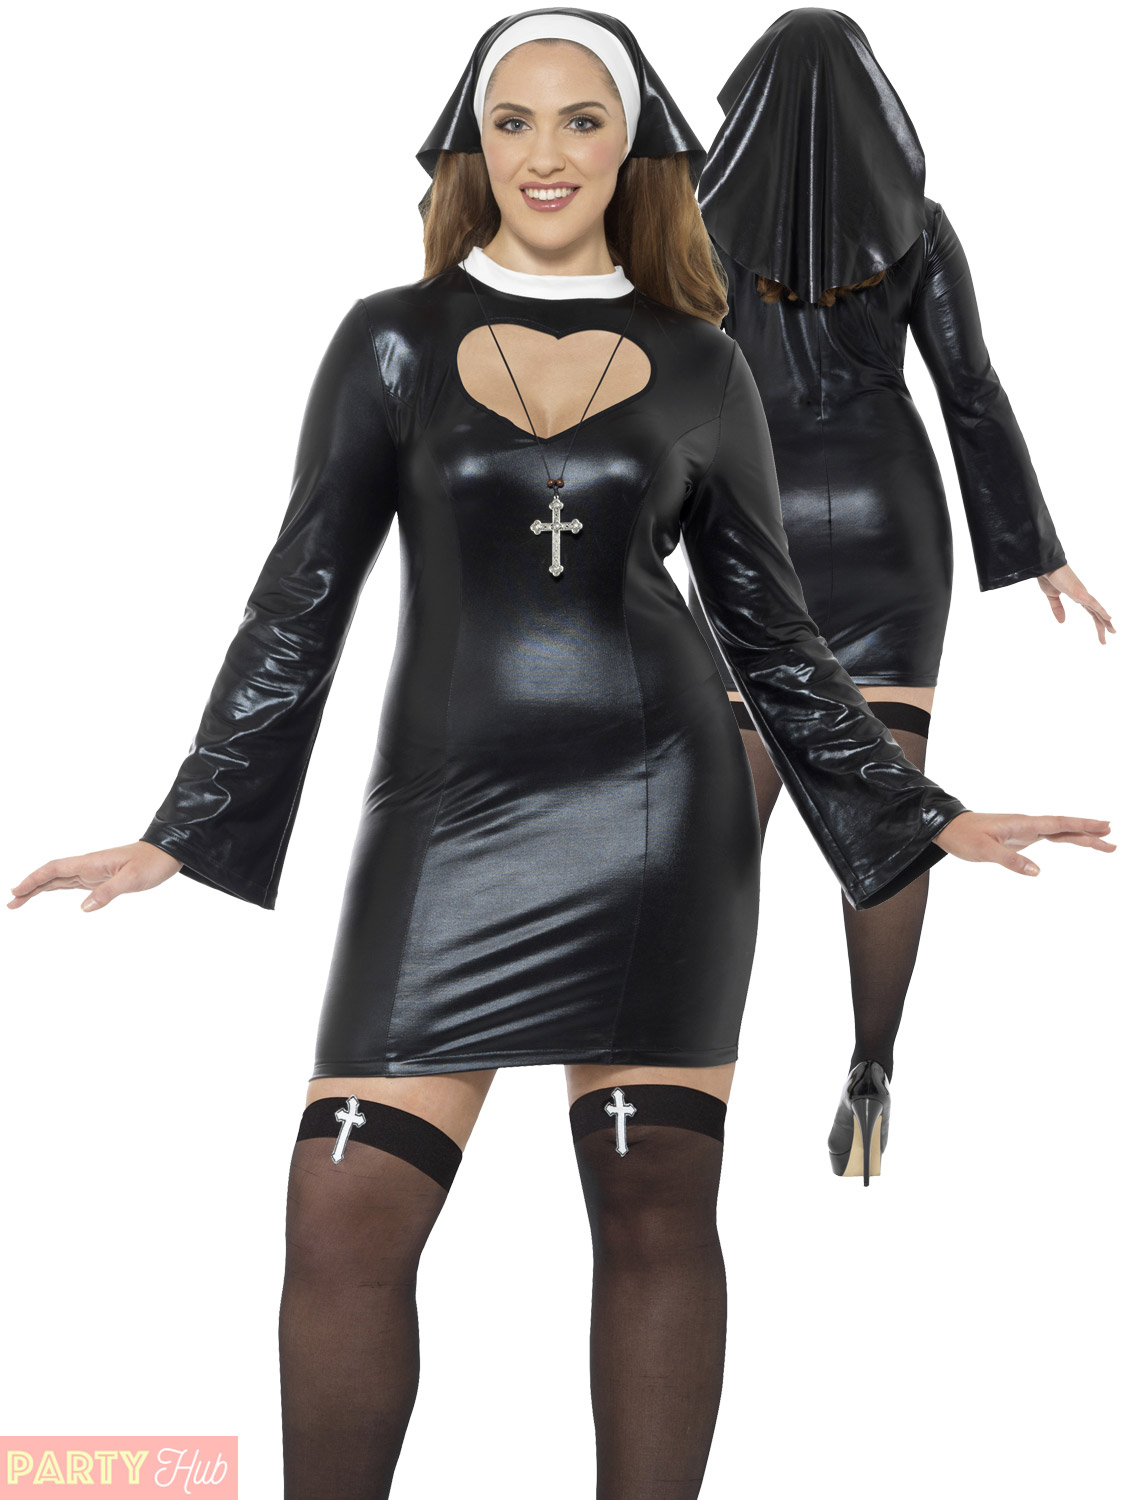 The expert, sexy plus size nun costume